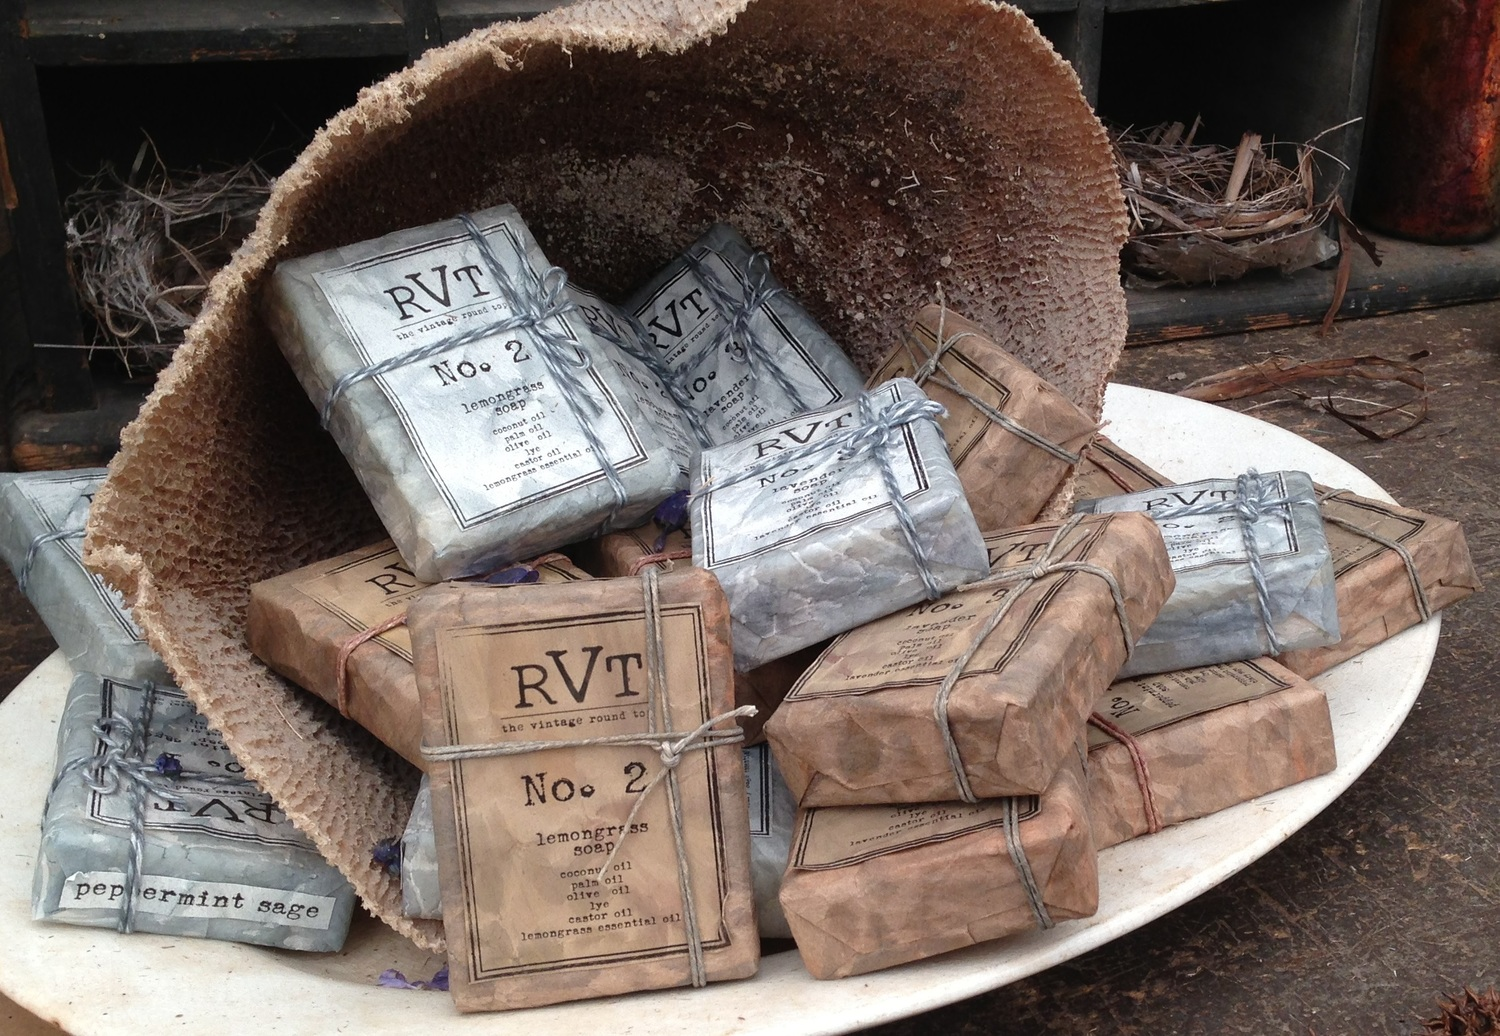 RVT HANDMADE SOAP, THE VINTAGE ROUND TOP